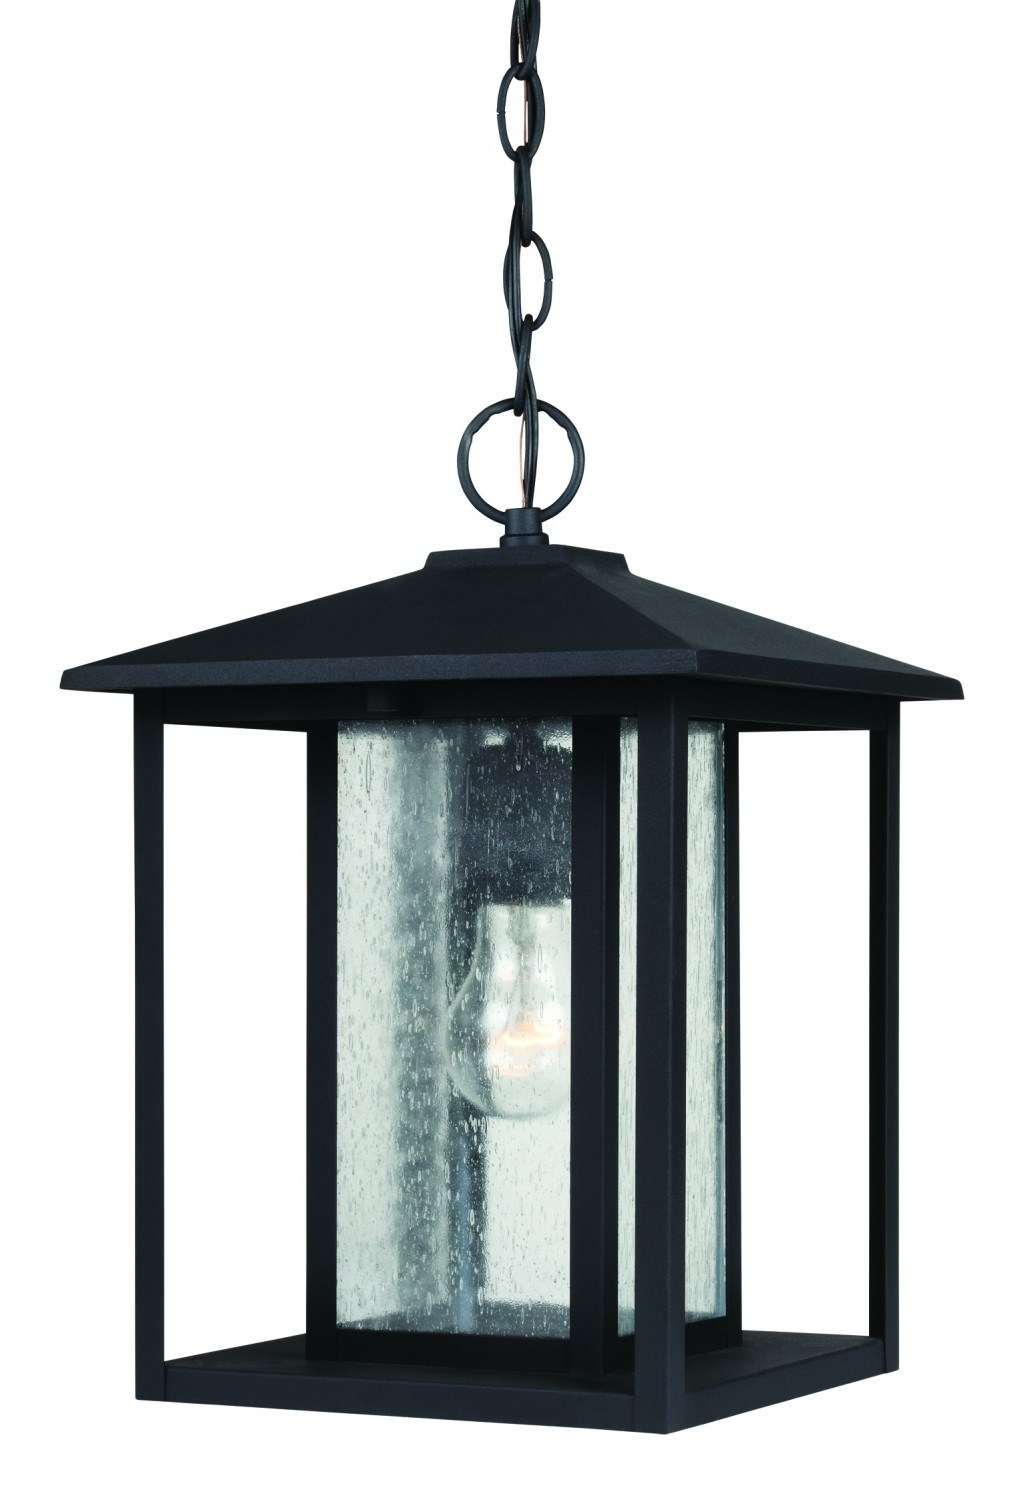 Latest Impressive On Outdoor Pendant Lighting Pertaining To Home Design Pertaining To Outdoor Hanging Lanterns From Australia (View 12 of 20)